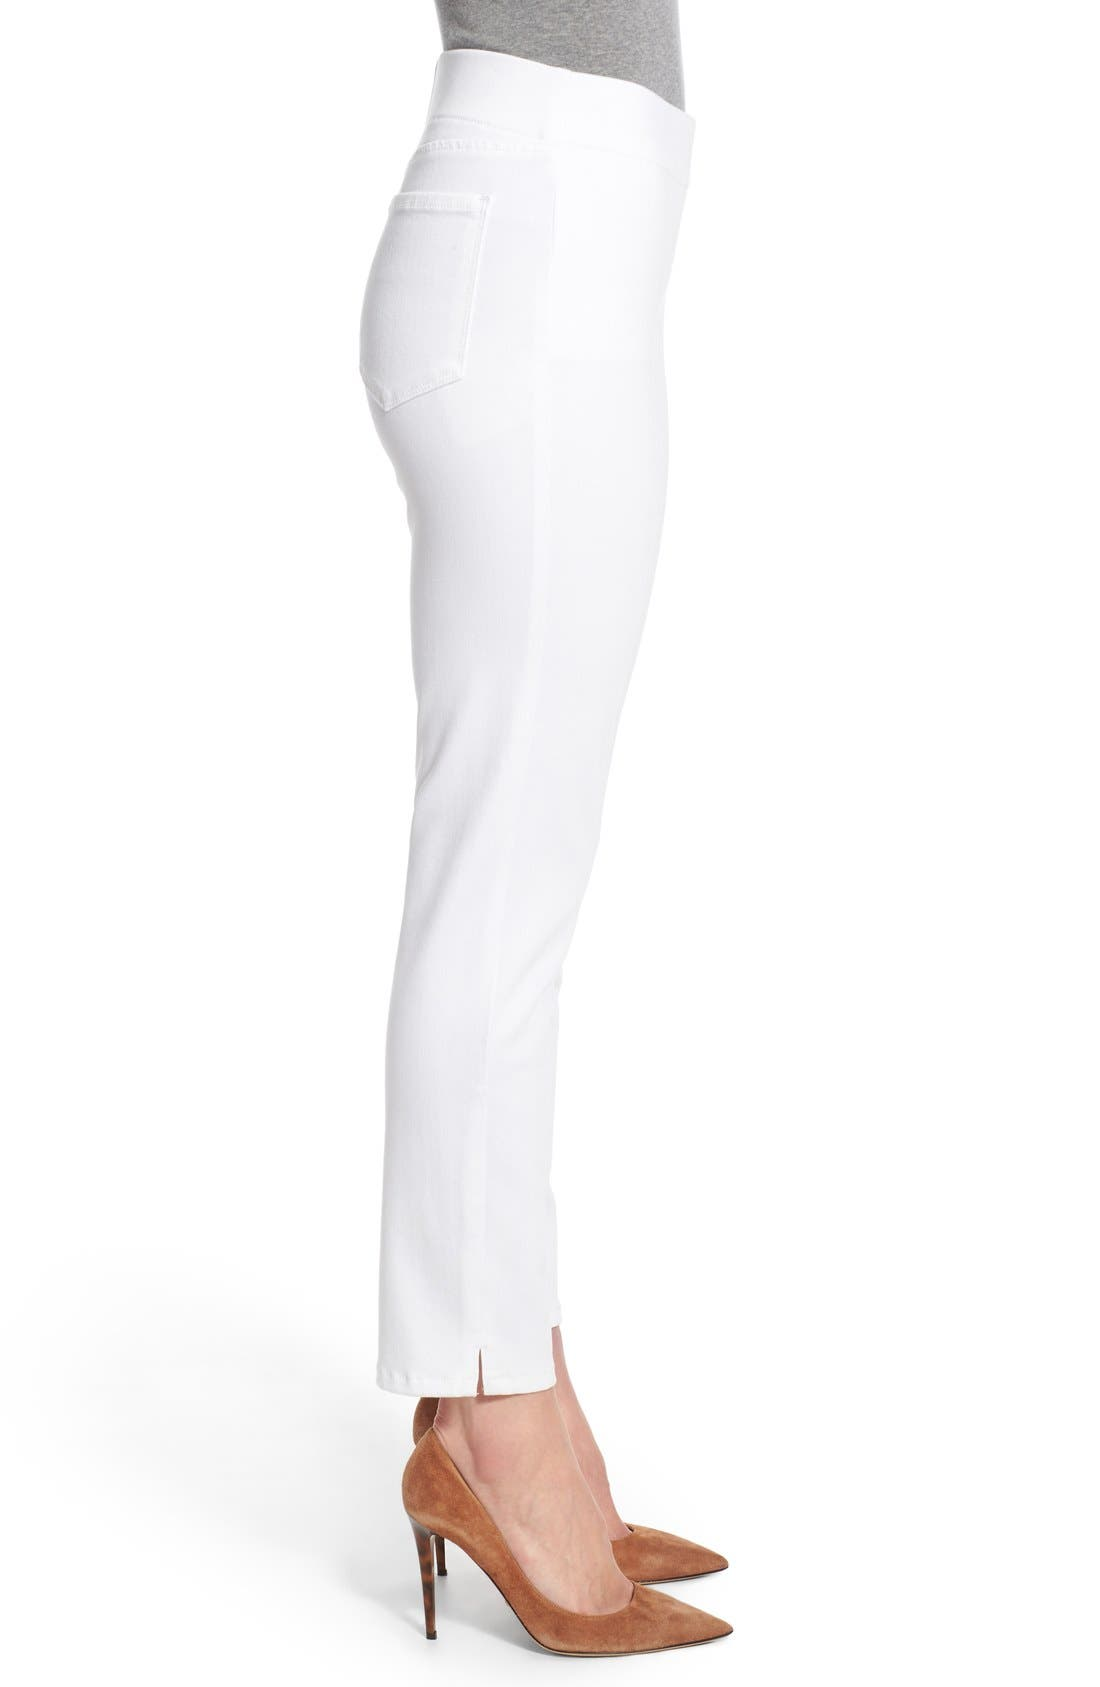 'Millie' Pull-On Stretch Ankle Skinny Jeans,                             Alternate thumbnail 3, color,                             Endless White